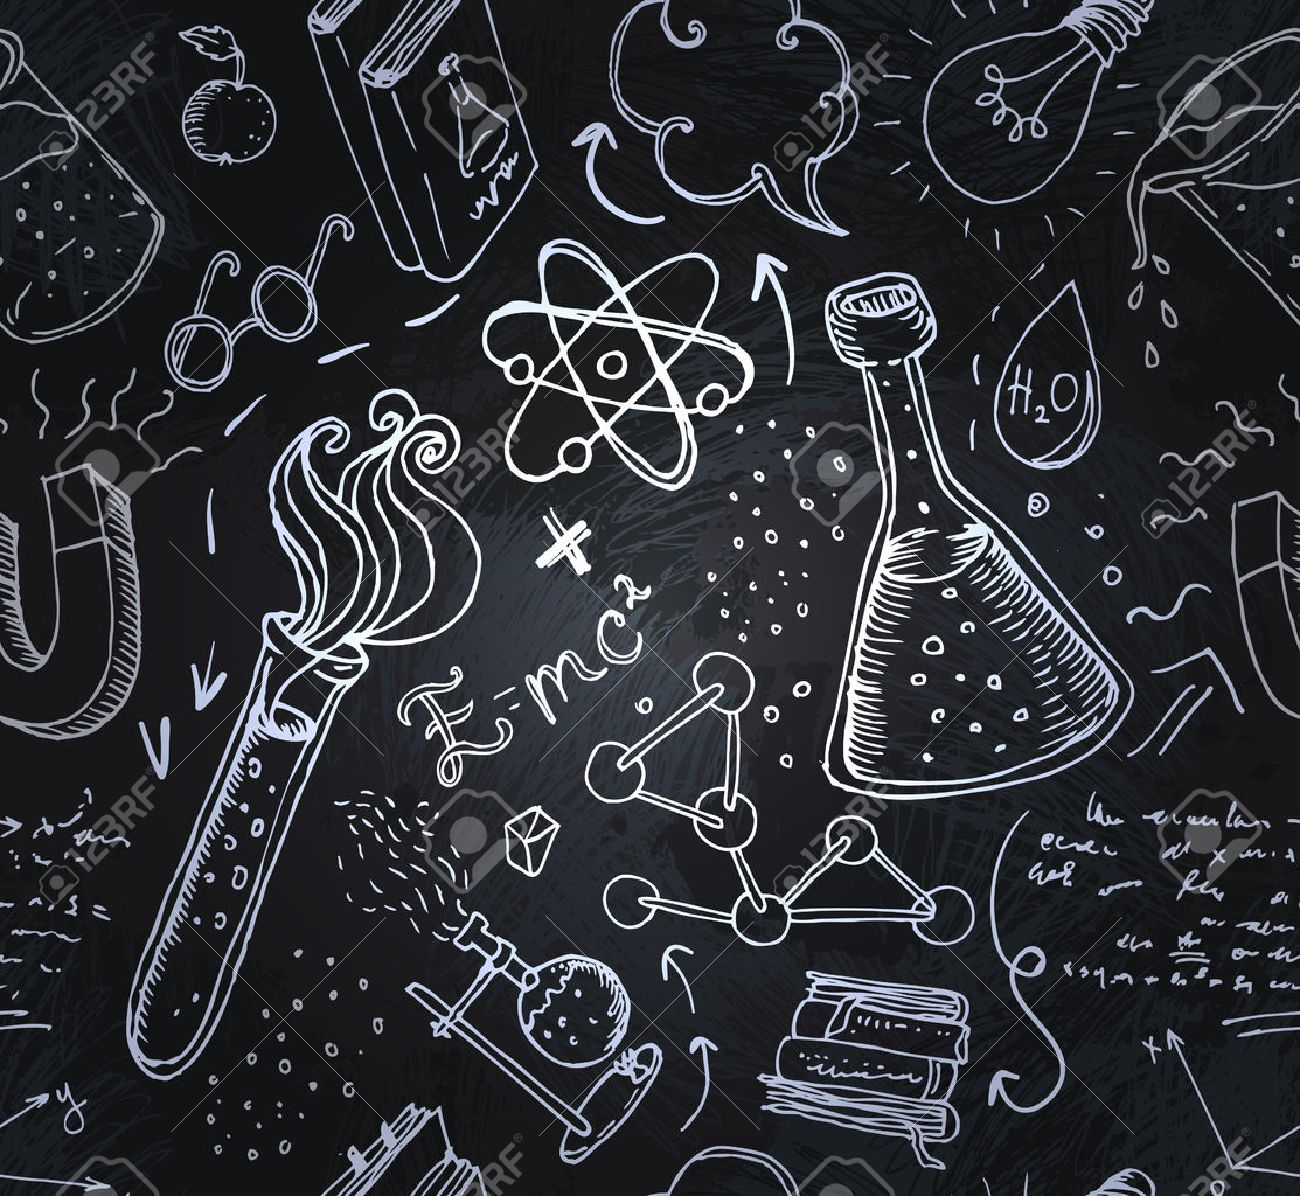 Back to School: science lab objects doodle vintage style sketches seamless pattern, vector illustration. - 44359055